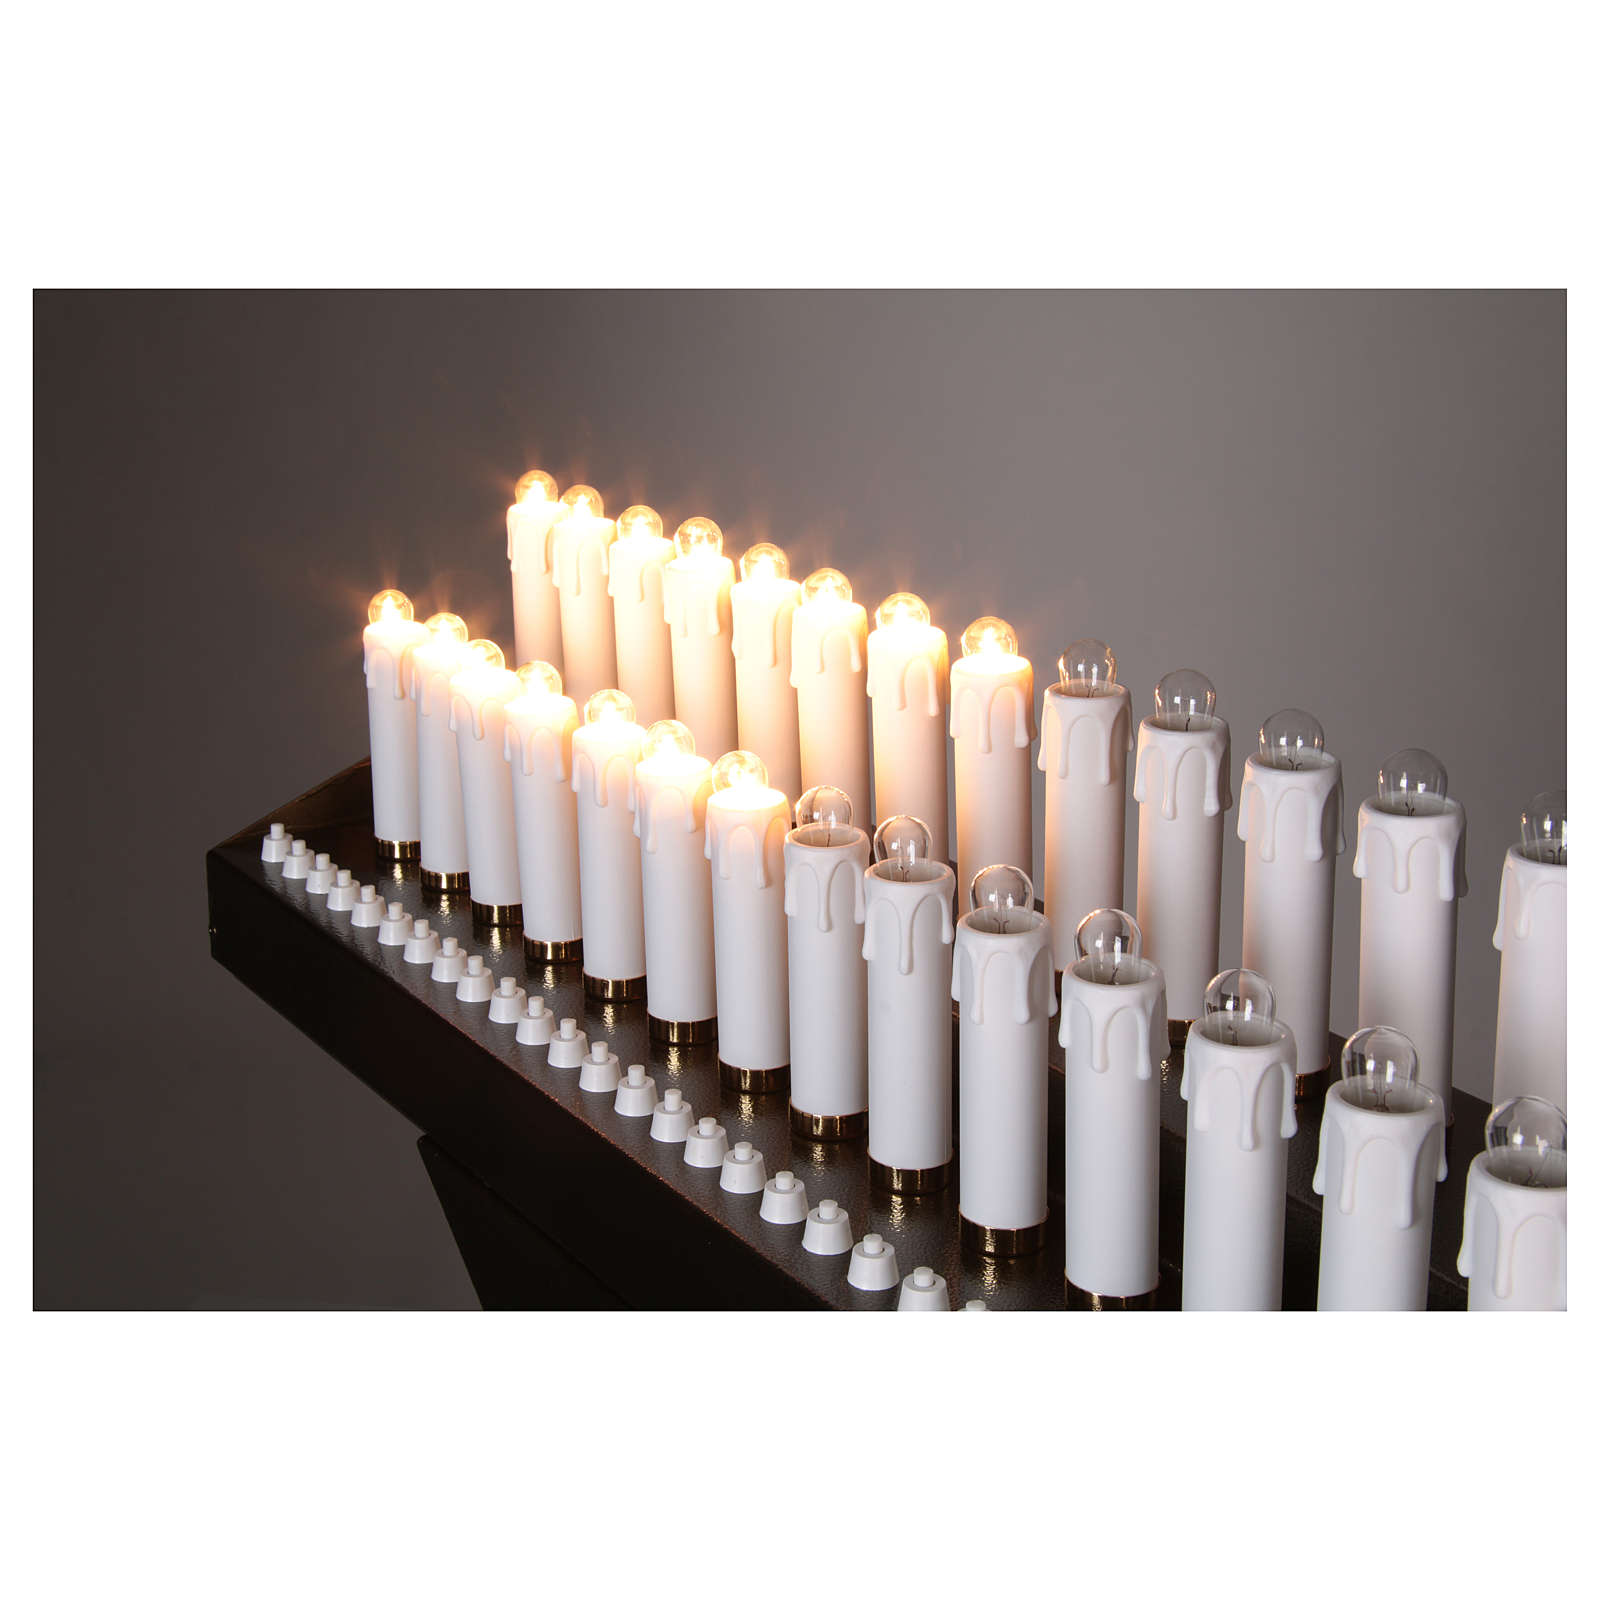 Electric votive 31 lights 24Vcc with buttons 4